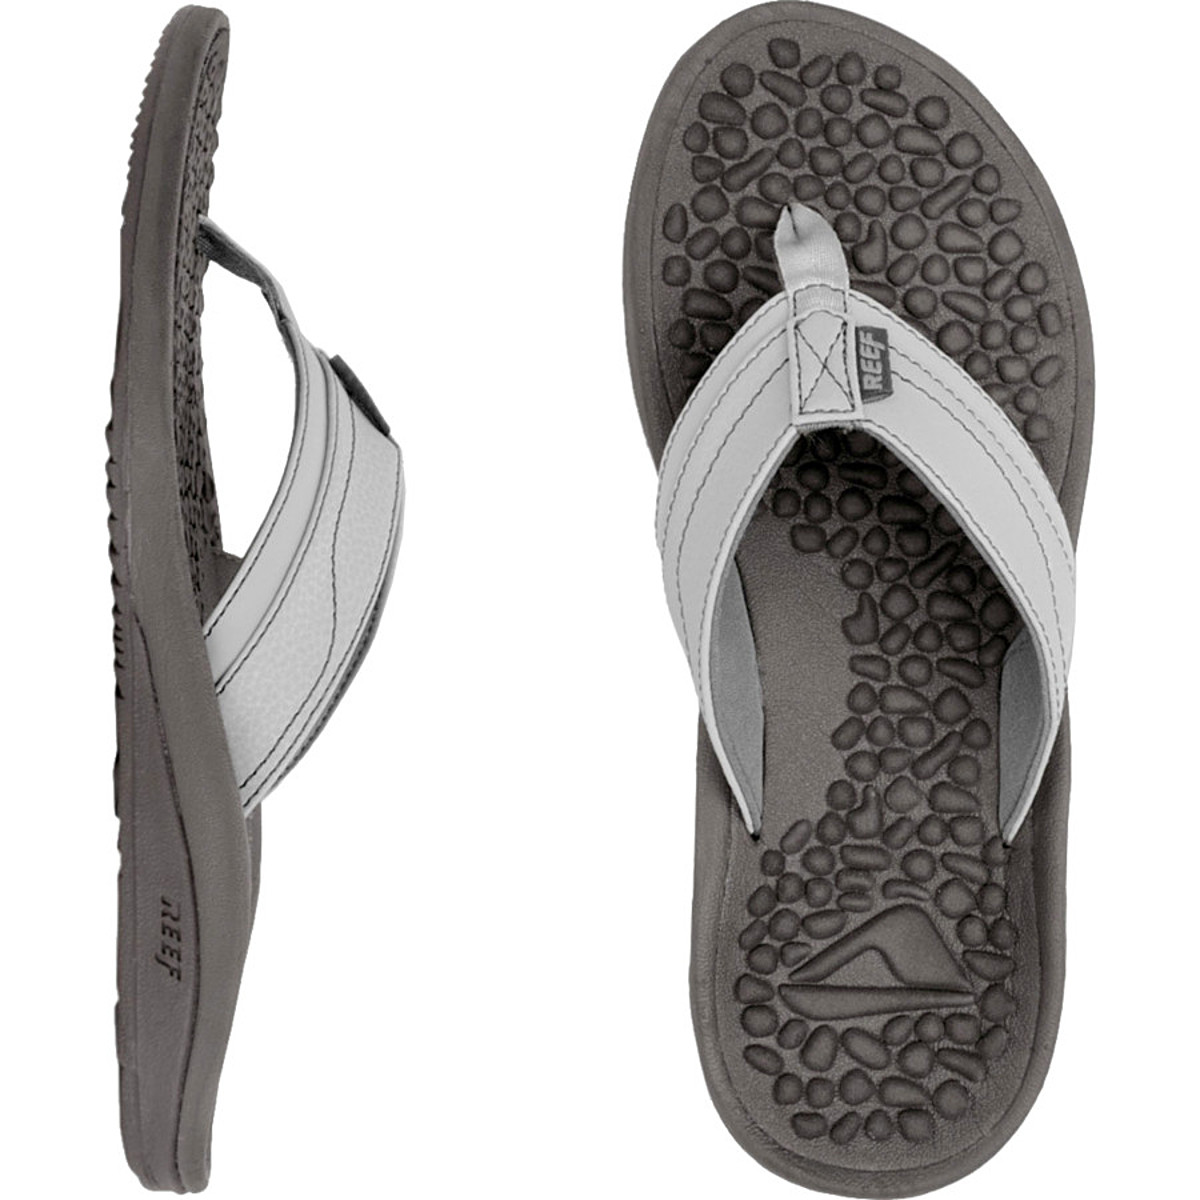 Reef Playa Negra Flip Flops, Brown